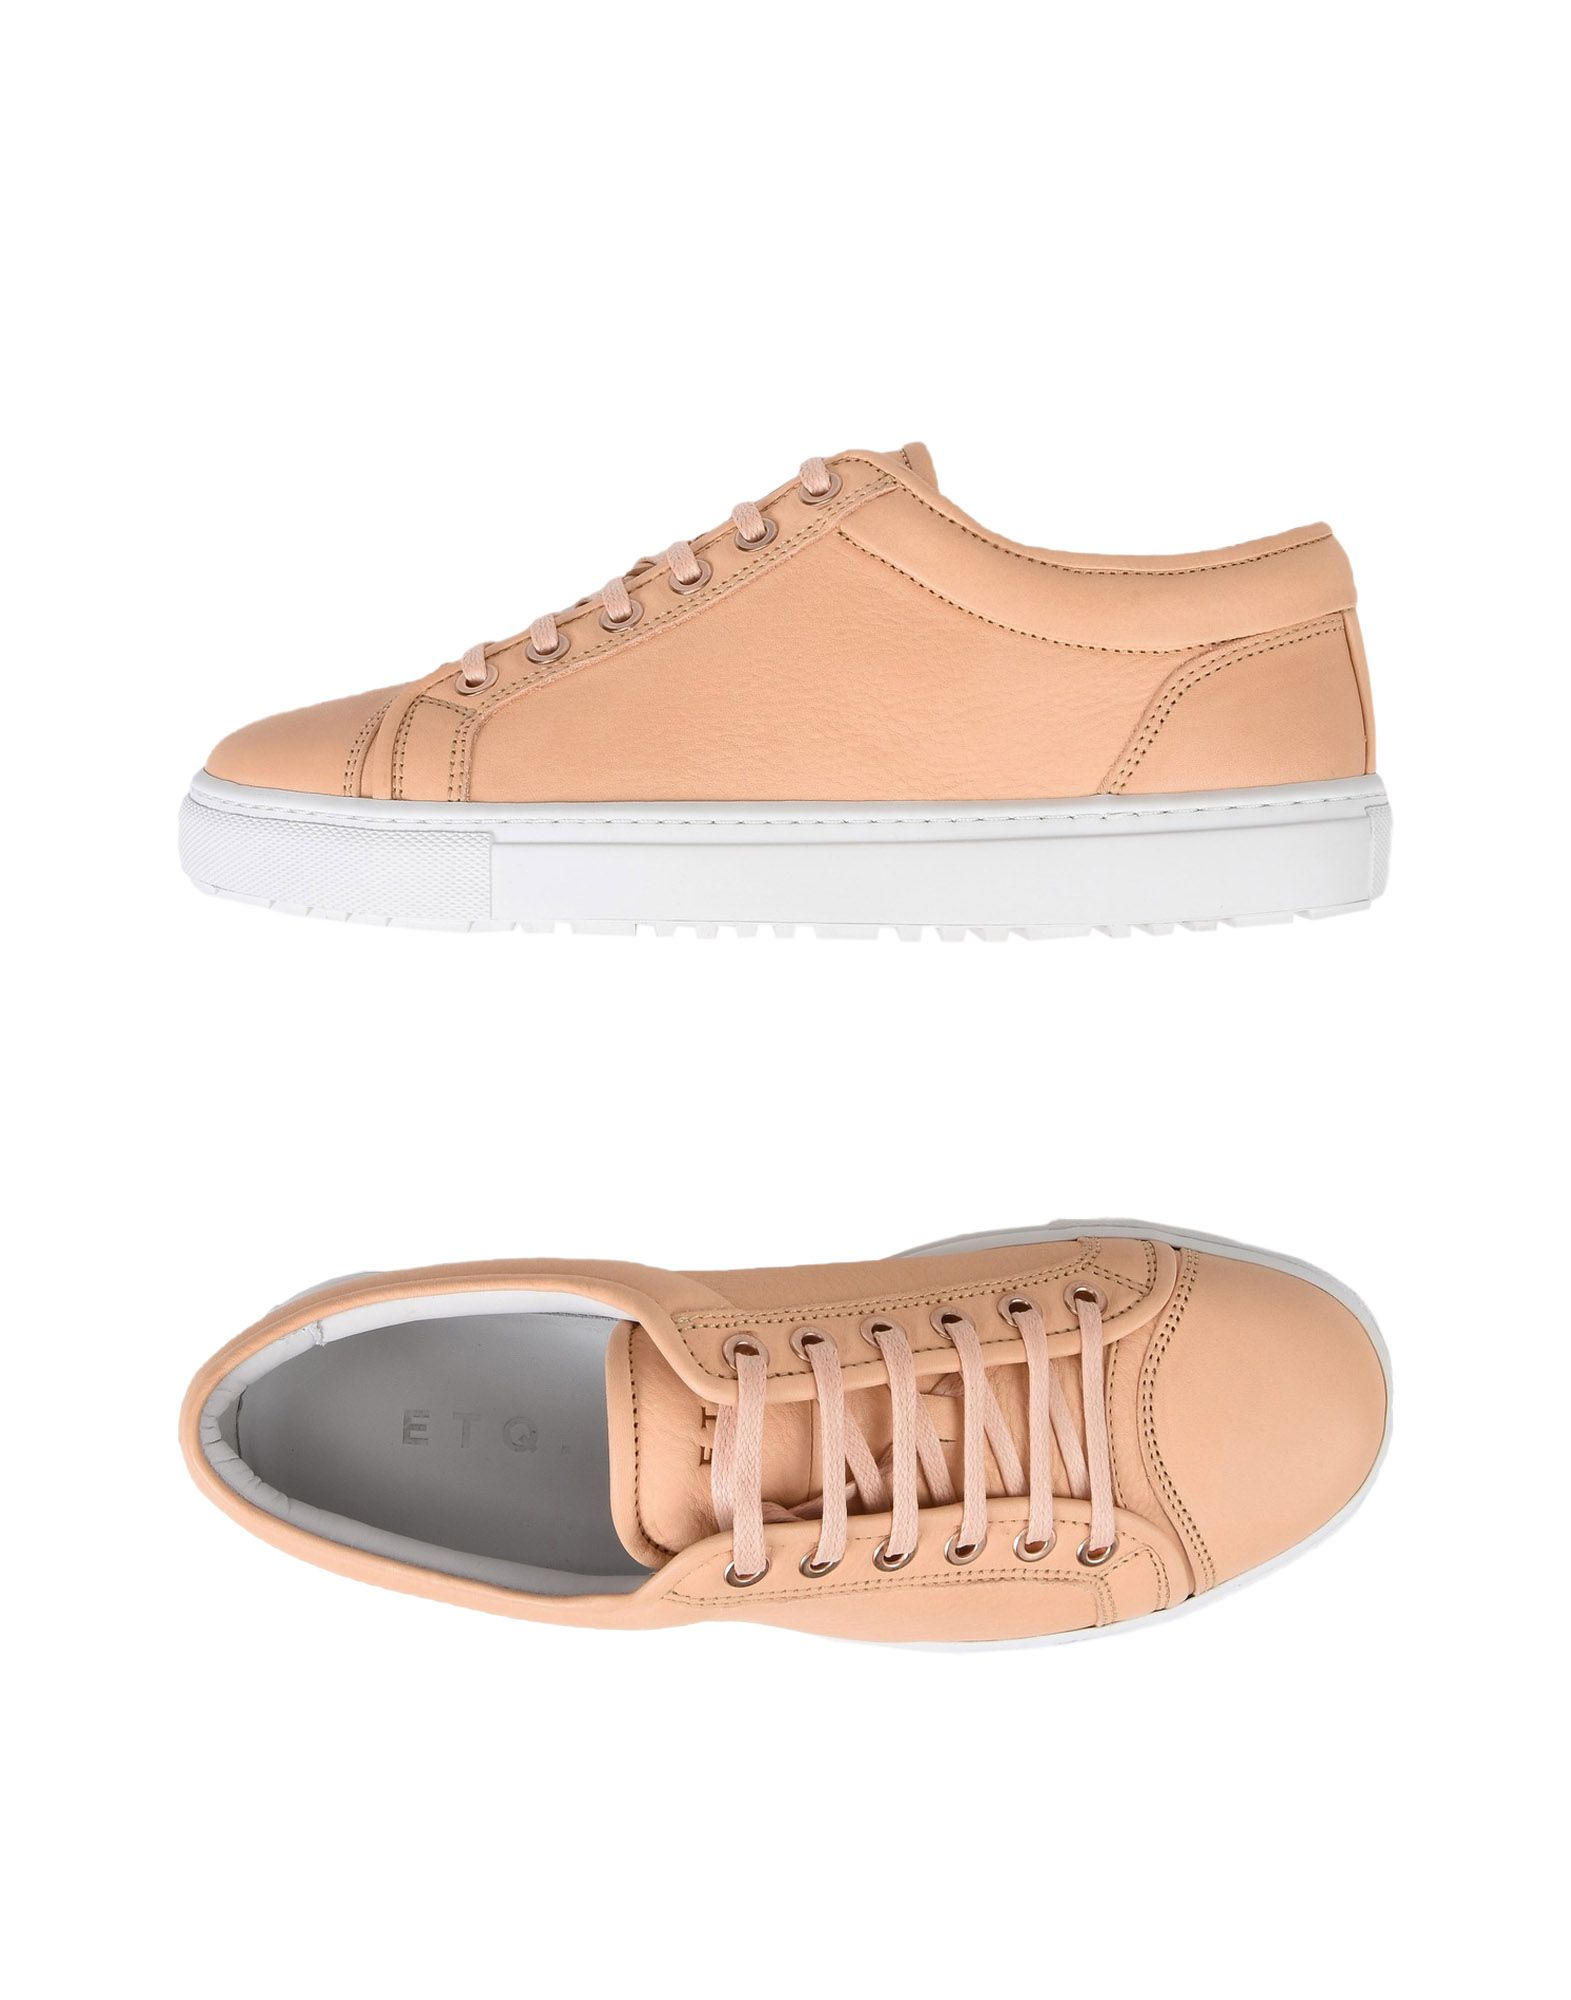 Sneakers Etq Amsterdam Low 1 Natural Vegetable Tanned - Donna - 11257154QD